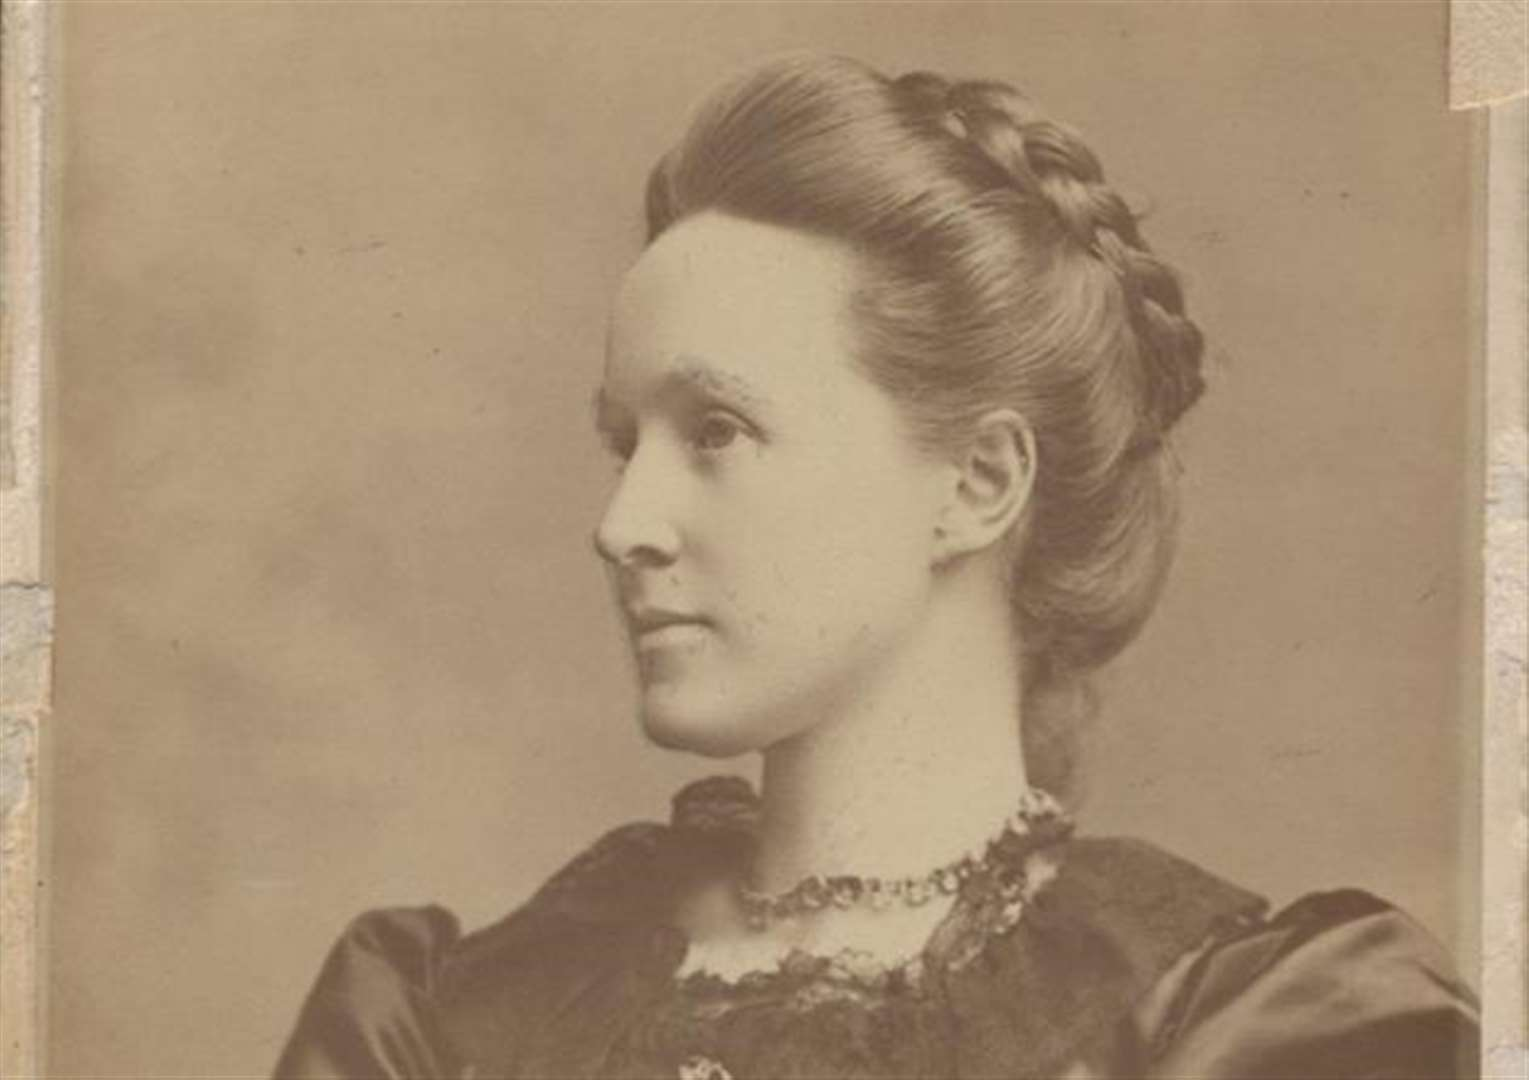 Cambridge's Millicent Fawcett and 100 years of women's votes